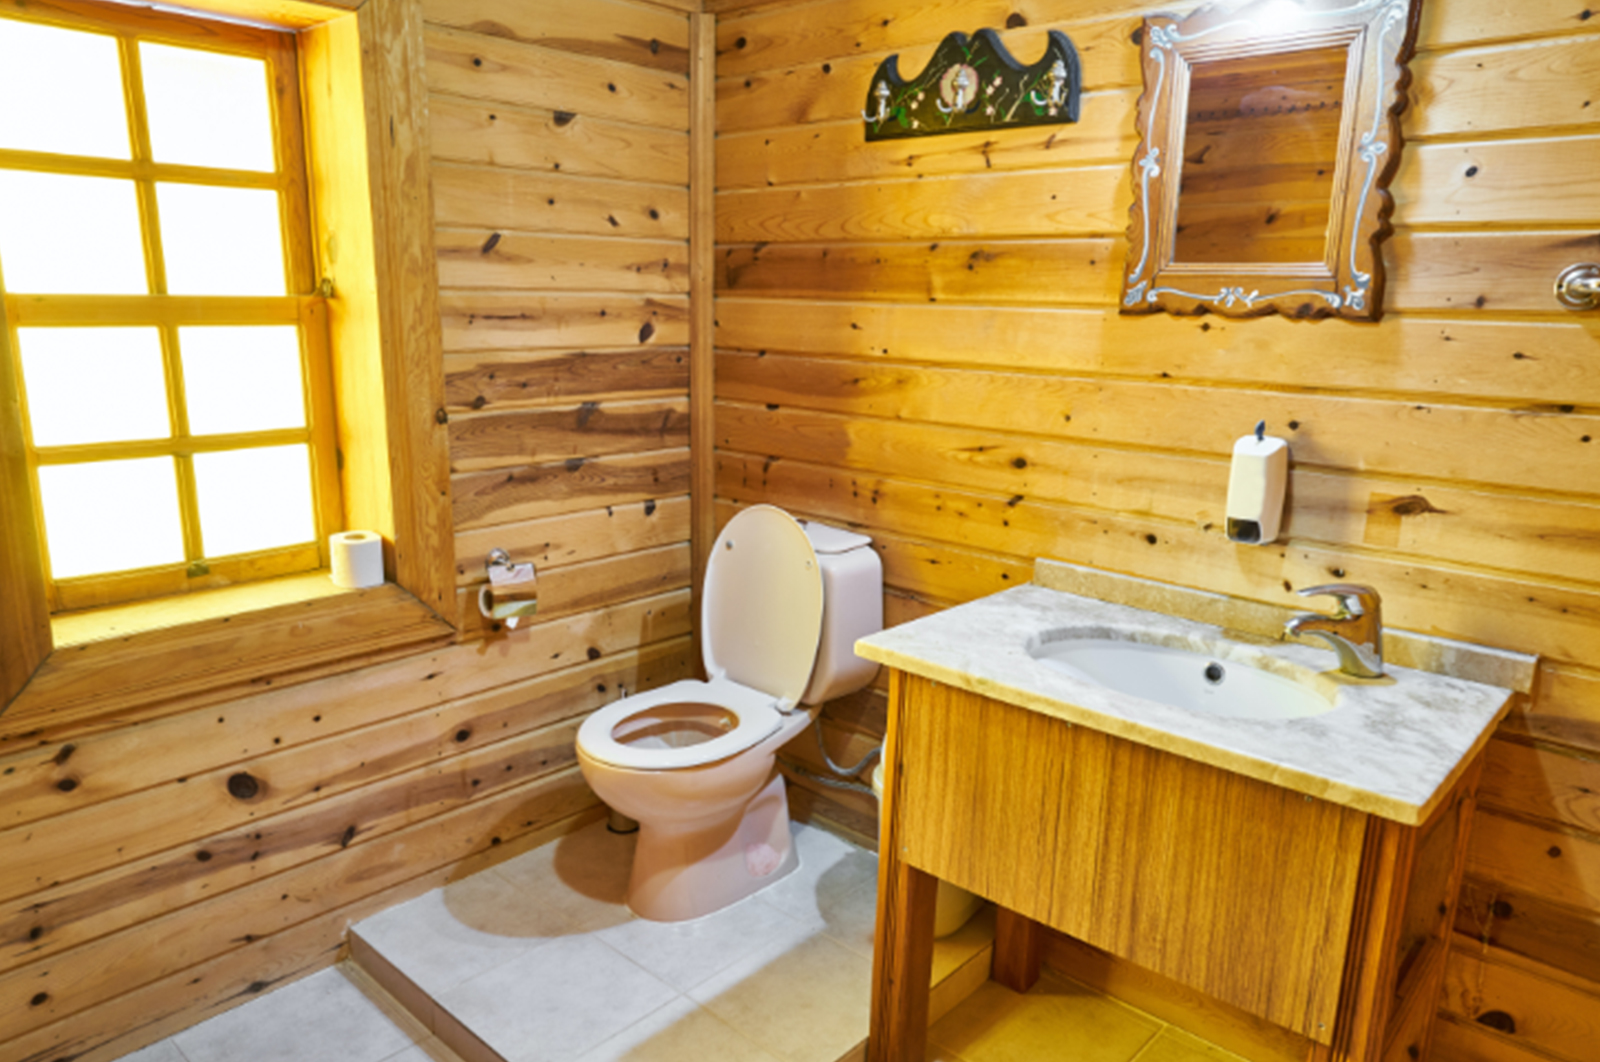 Toilet with wooden walls